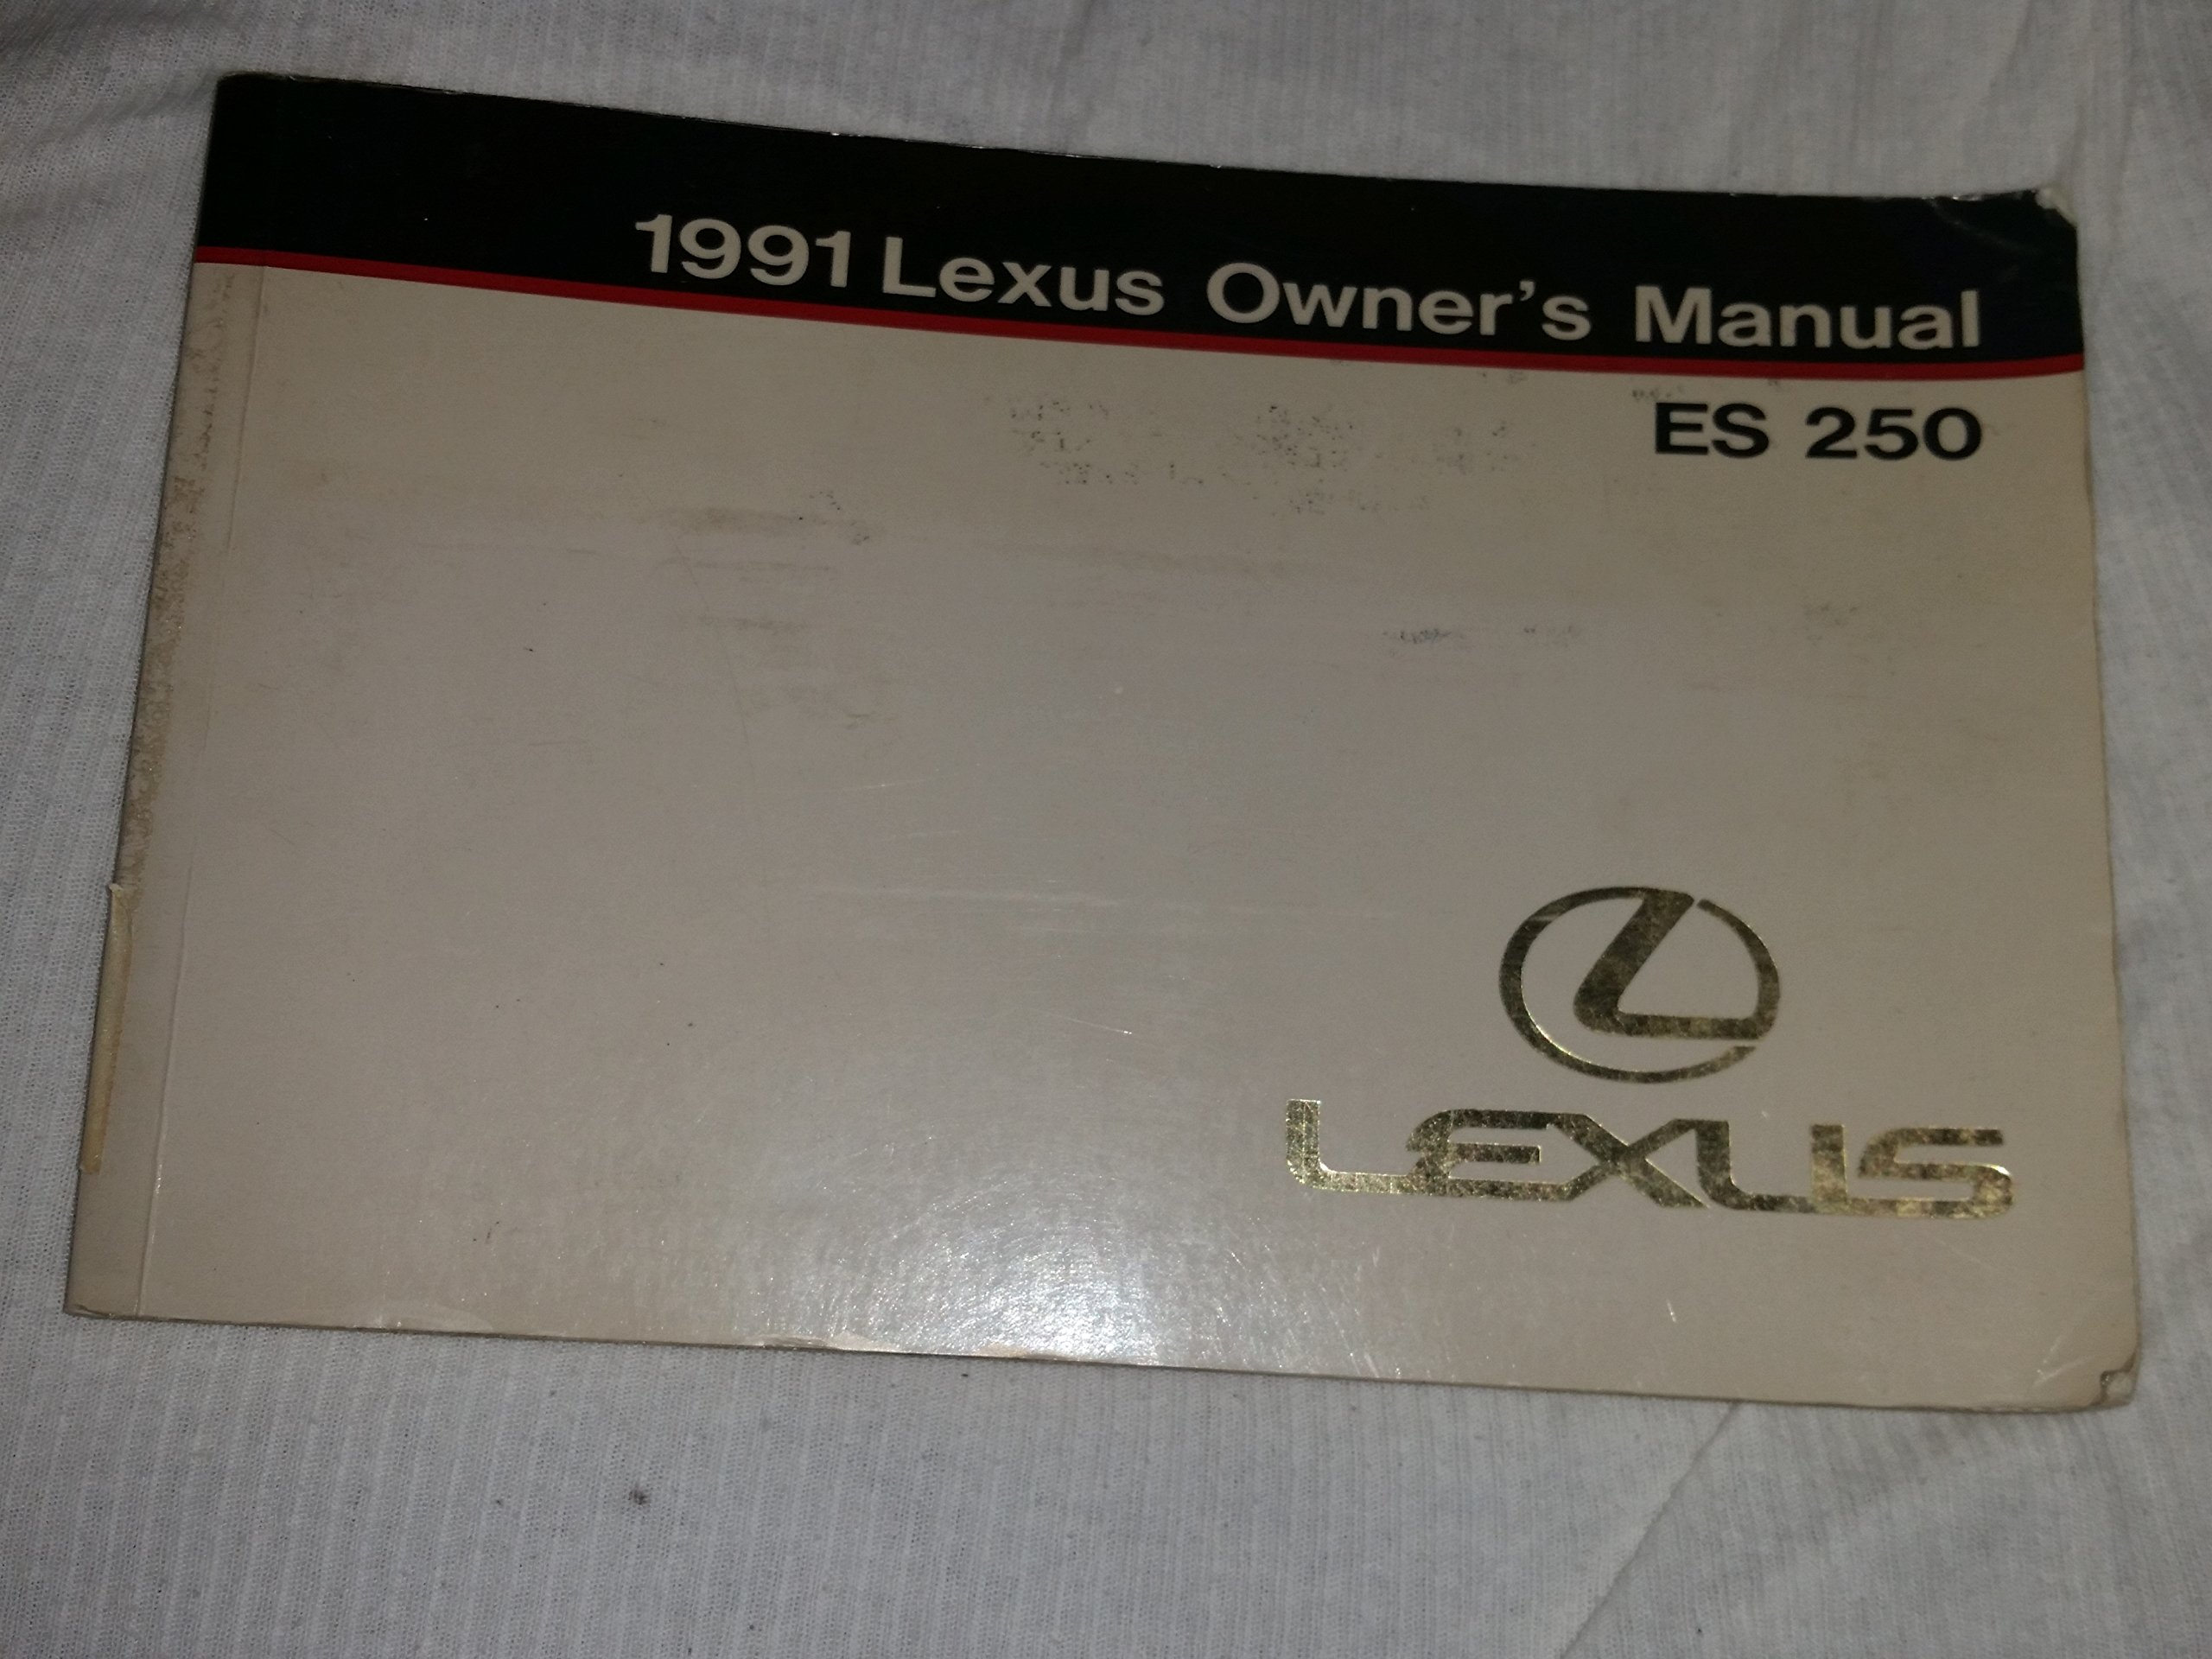 1991 Lexus Owner's Manual ES 250: Toyota Motor Corporation